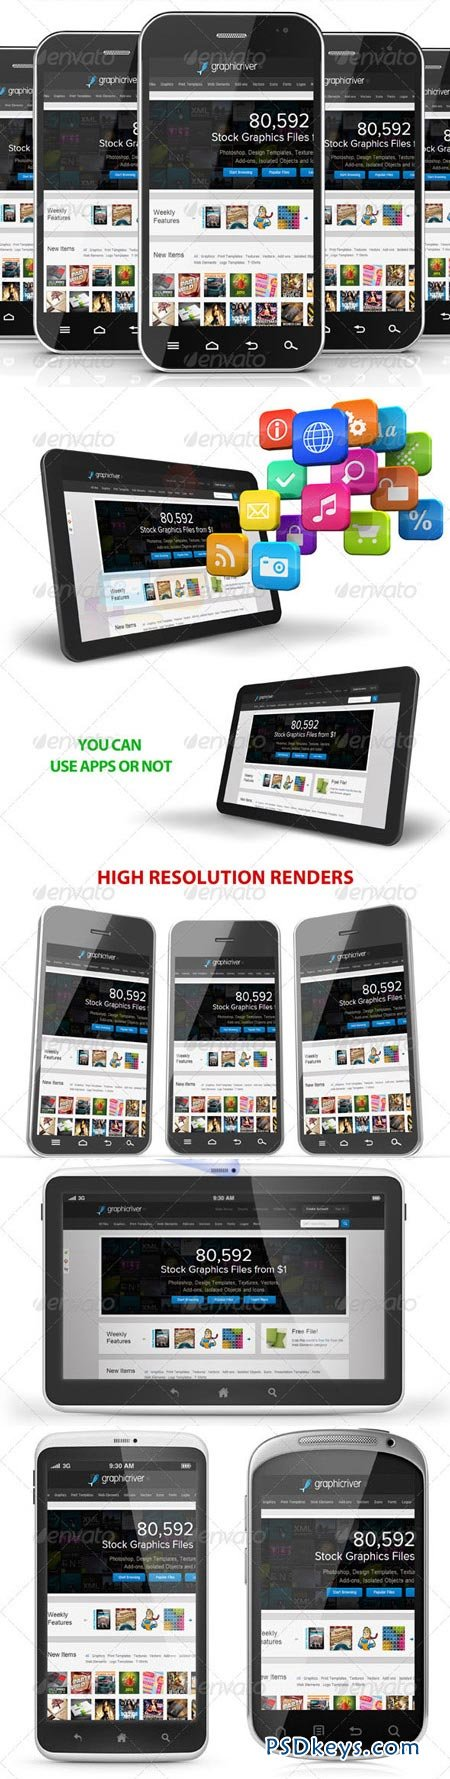 Android Devices Mockup 3495498